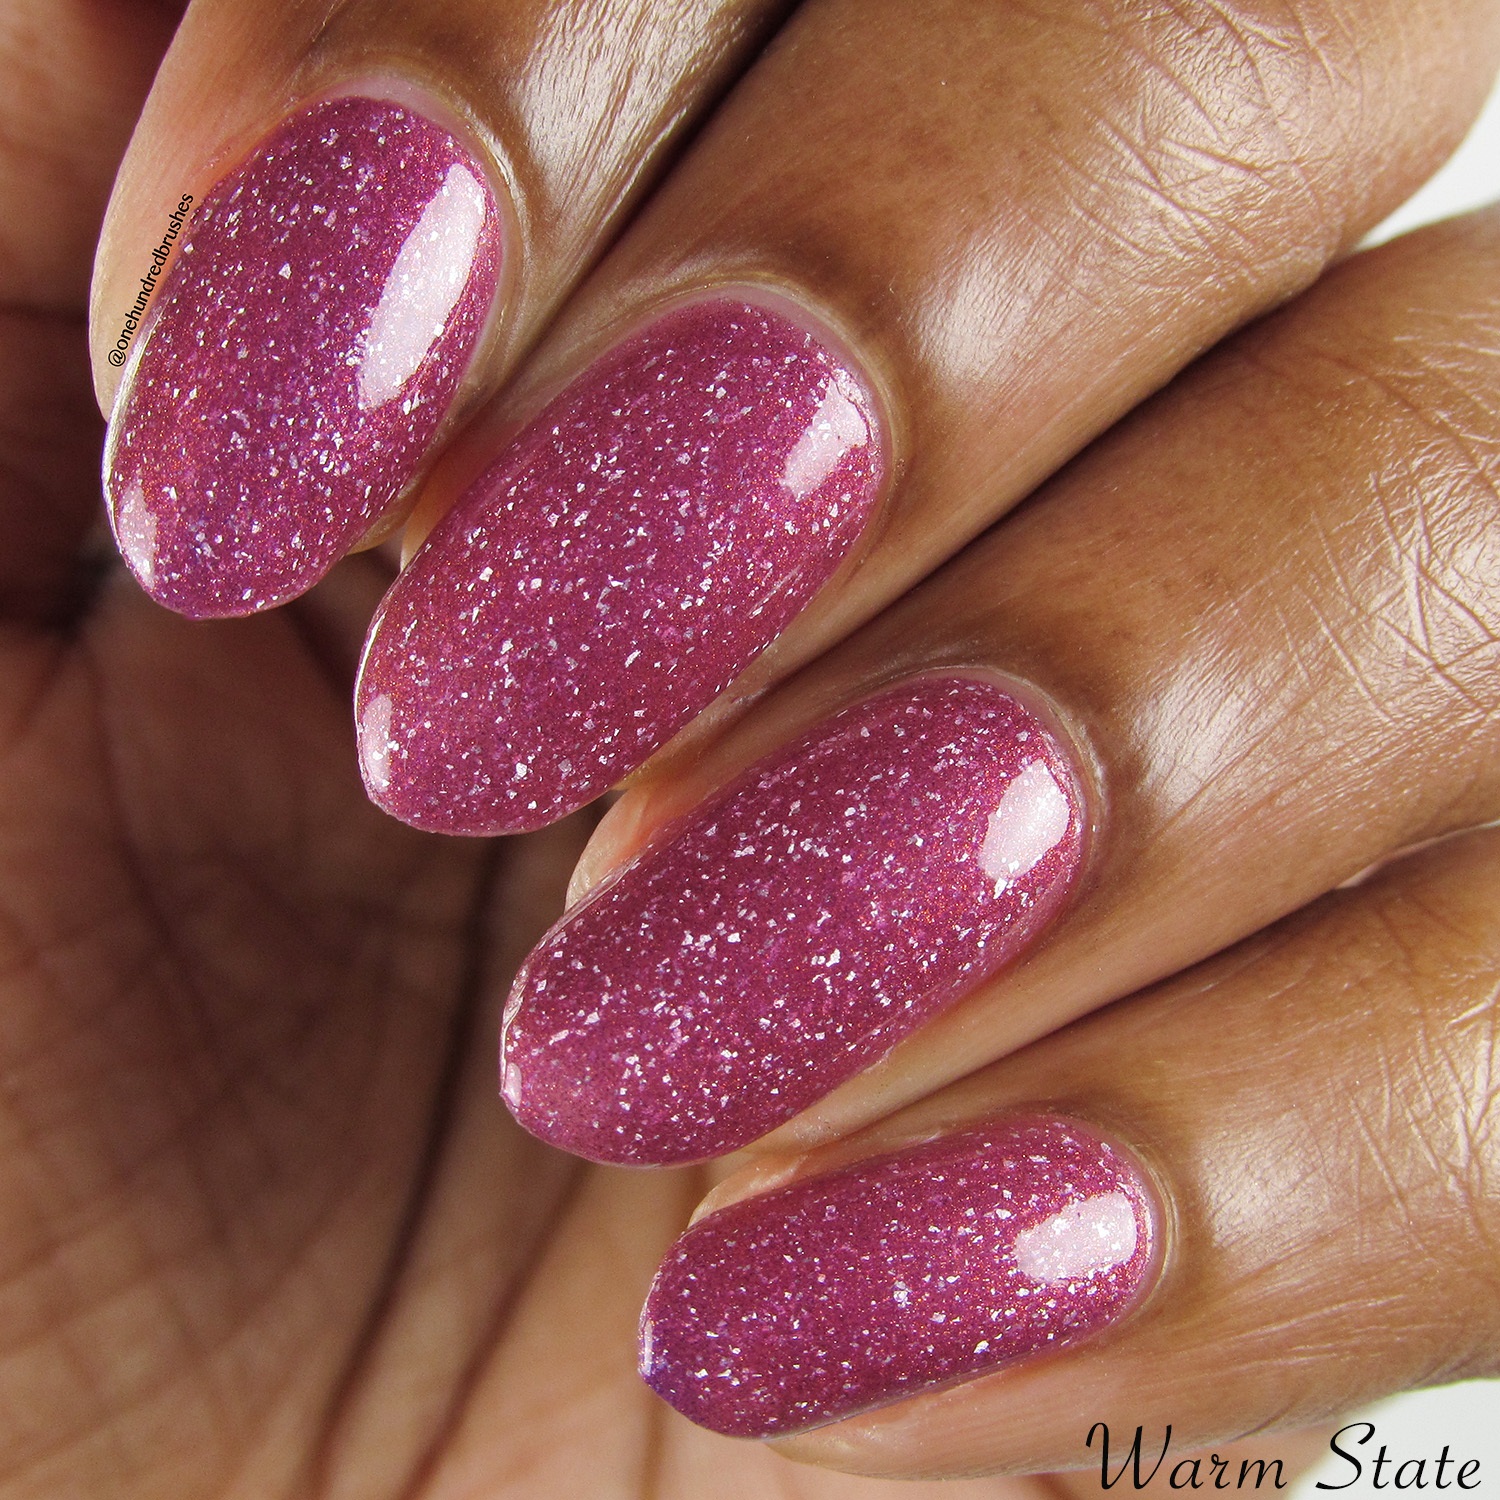 Anything For Selenas - Warm, closeup - Vapid Lacquer - May Polish Pickup - thermal - multichrome - holographic